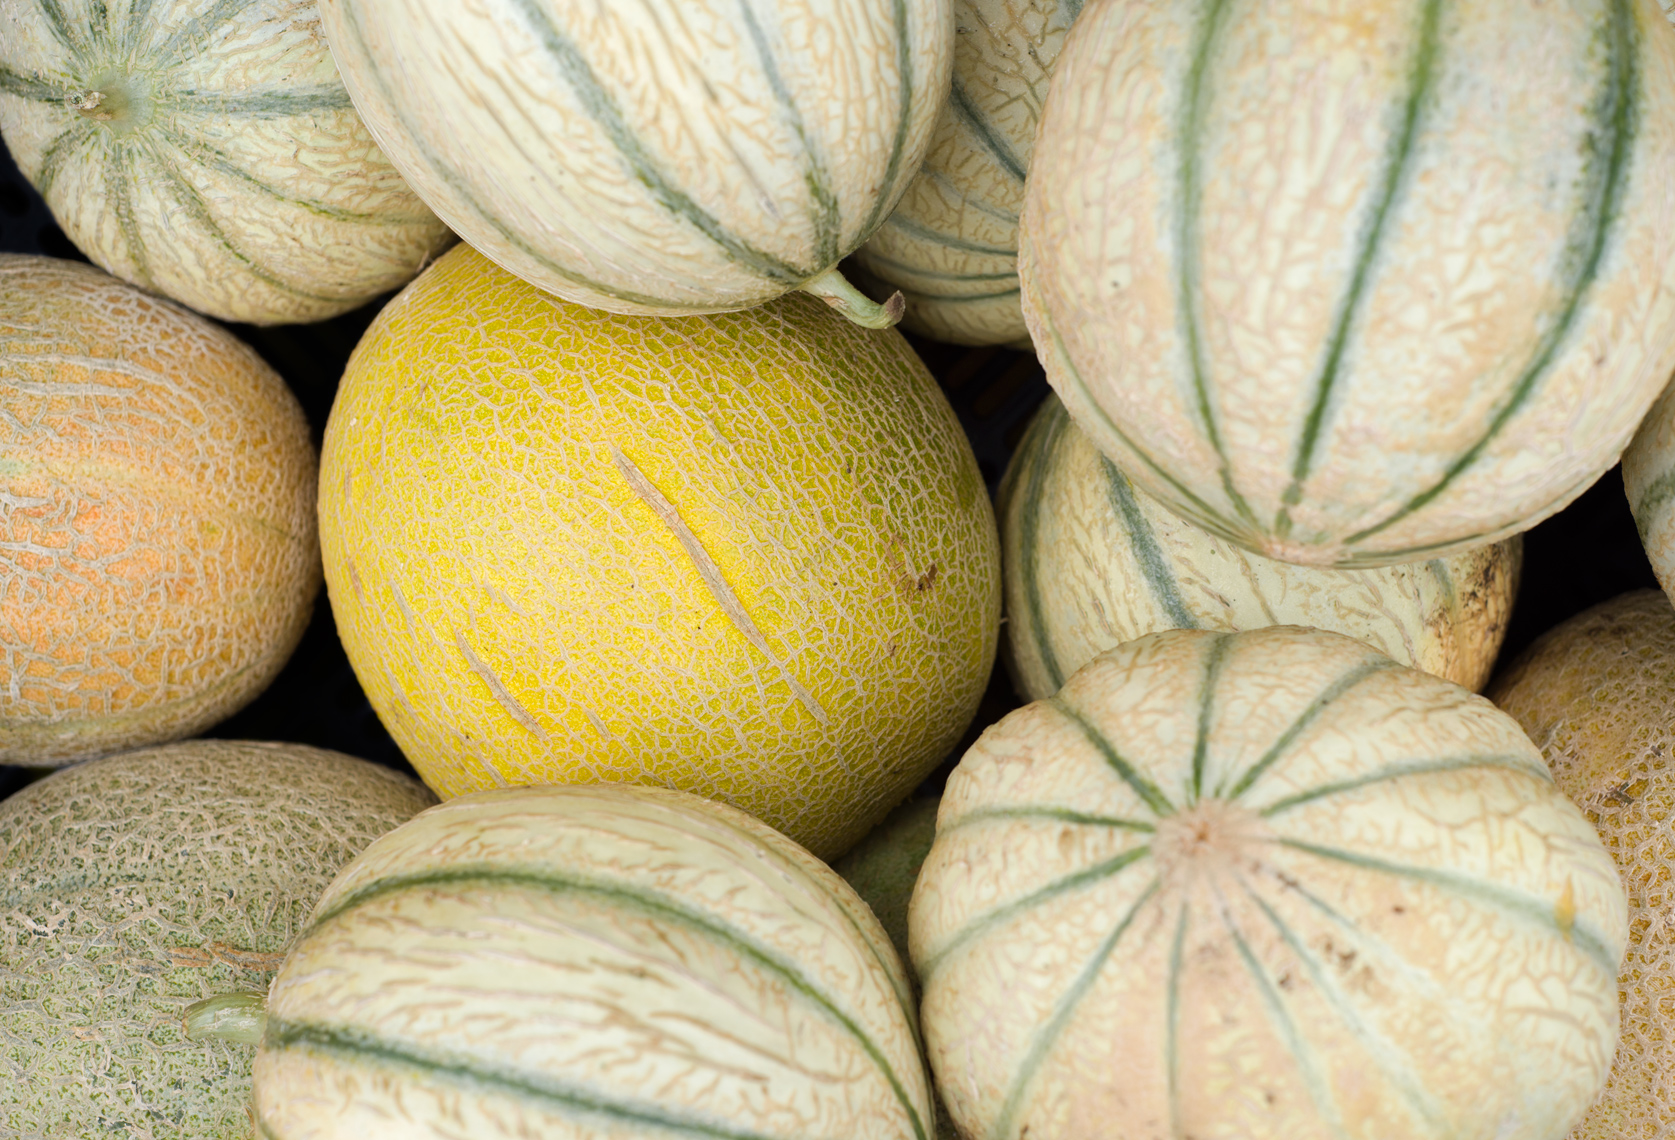 Green Spark Farm melons